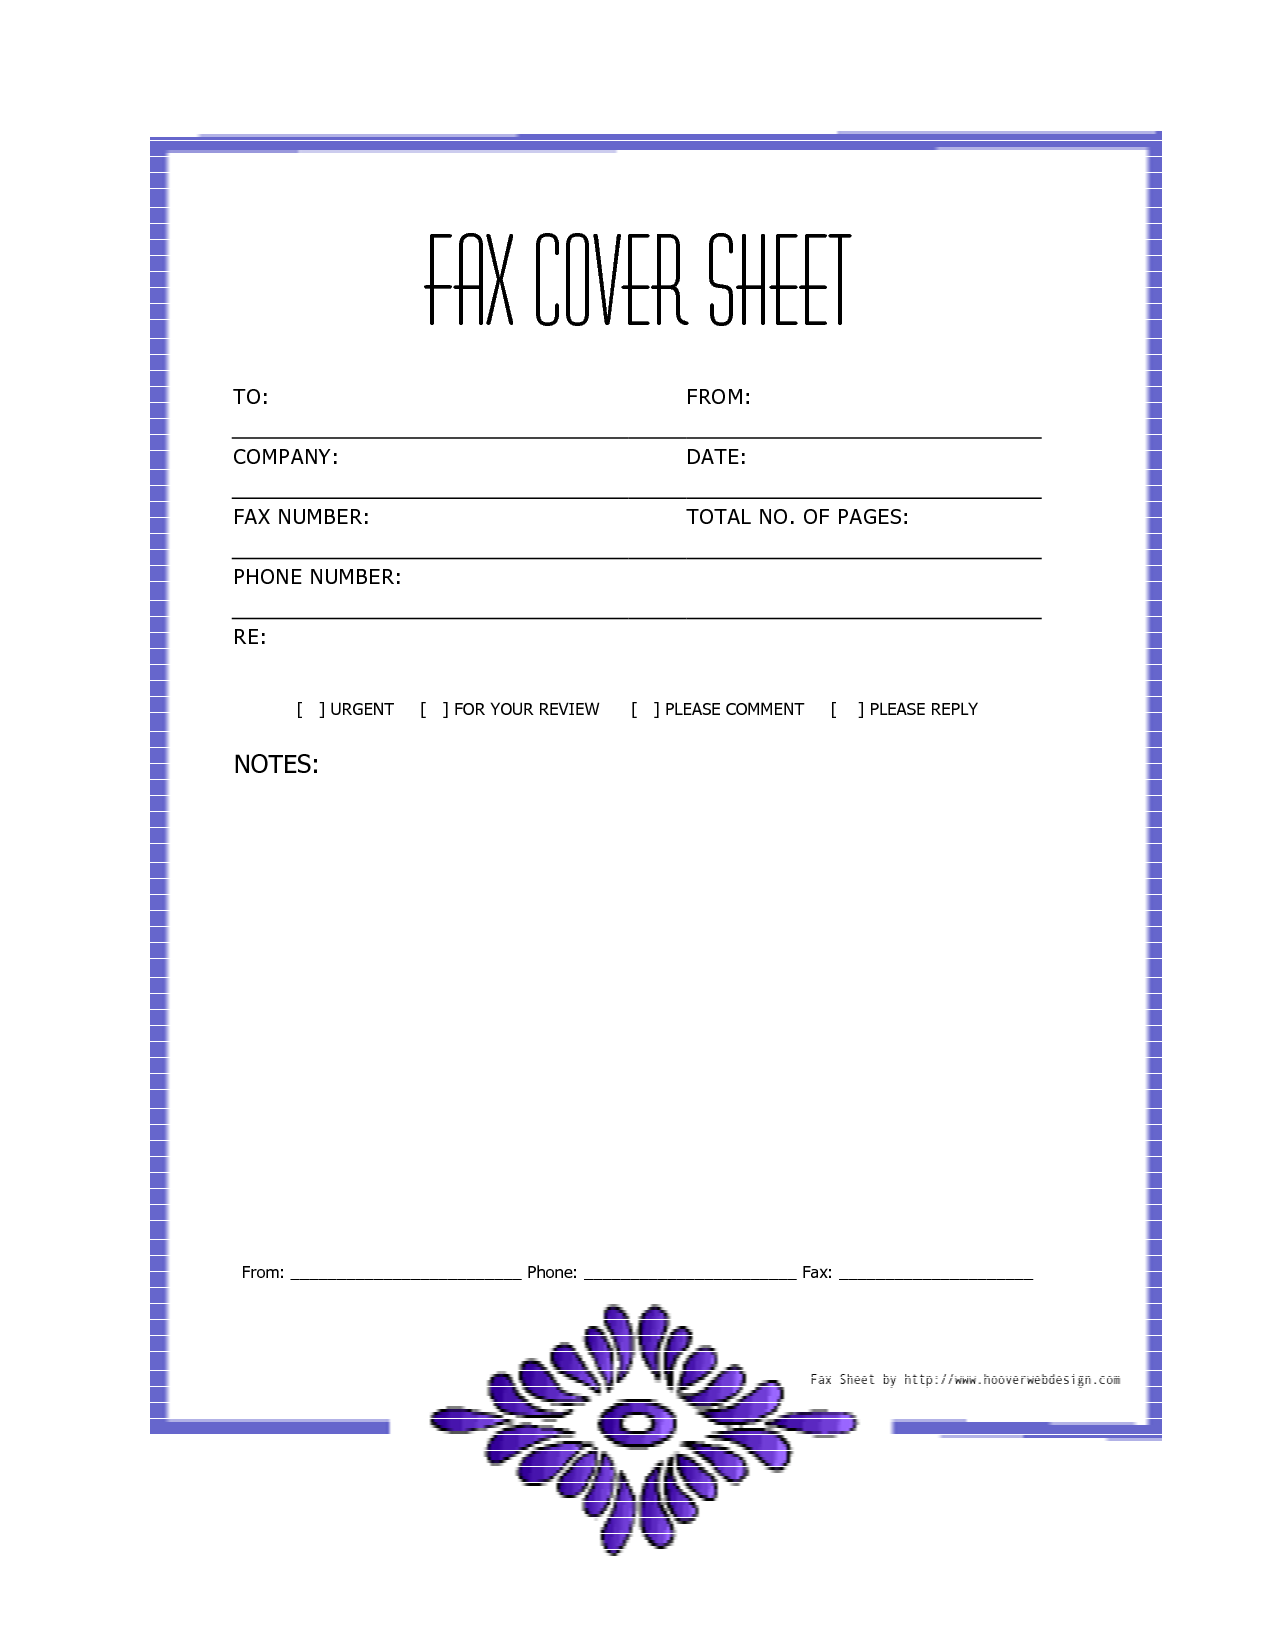 Free Downloads Fax Covers Sheets | Free Printable Fax Cover Sheet Template  Elegant   Download As  Fax Form Template Free